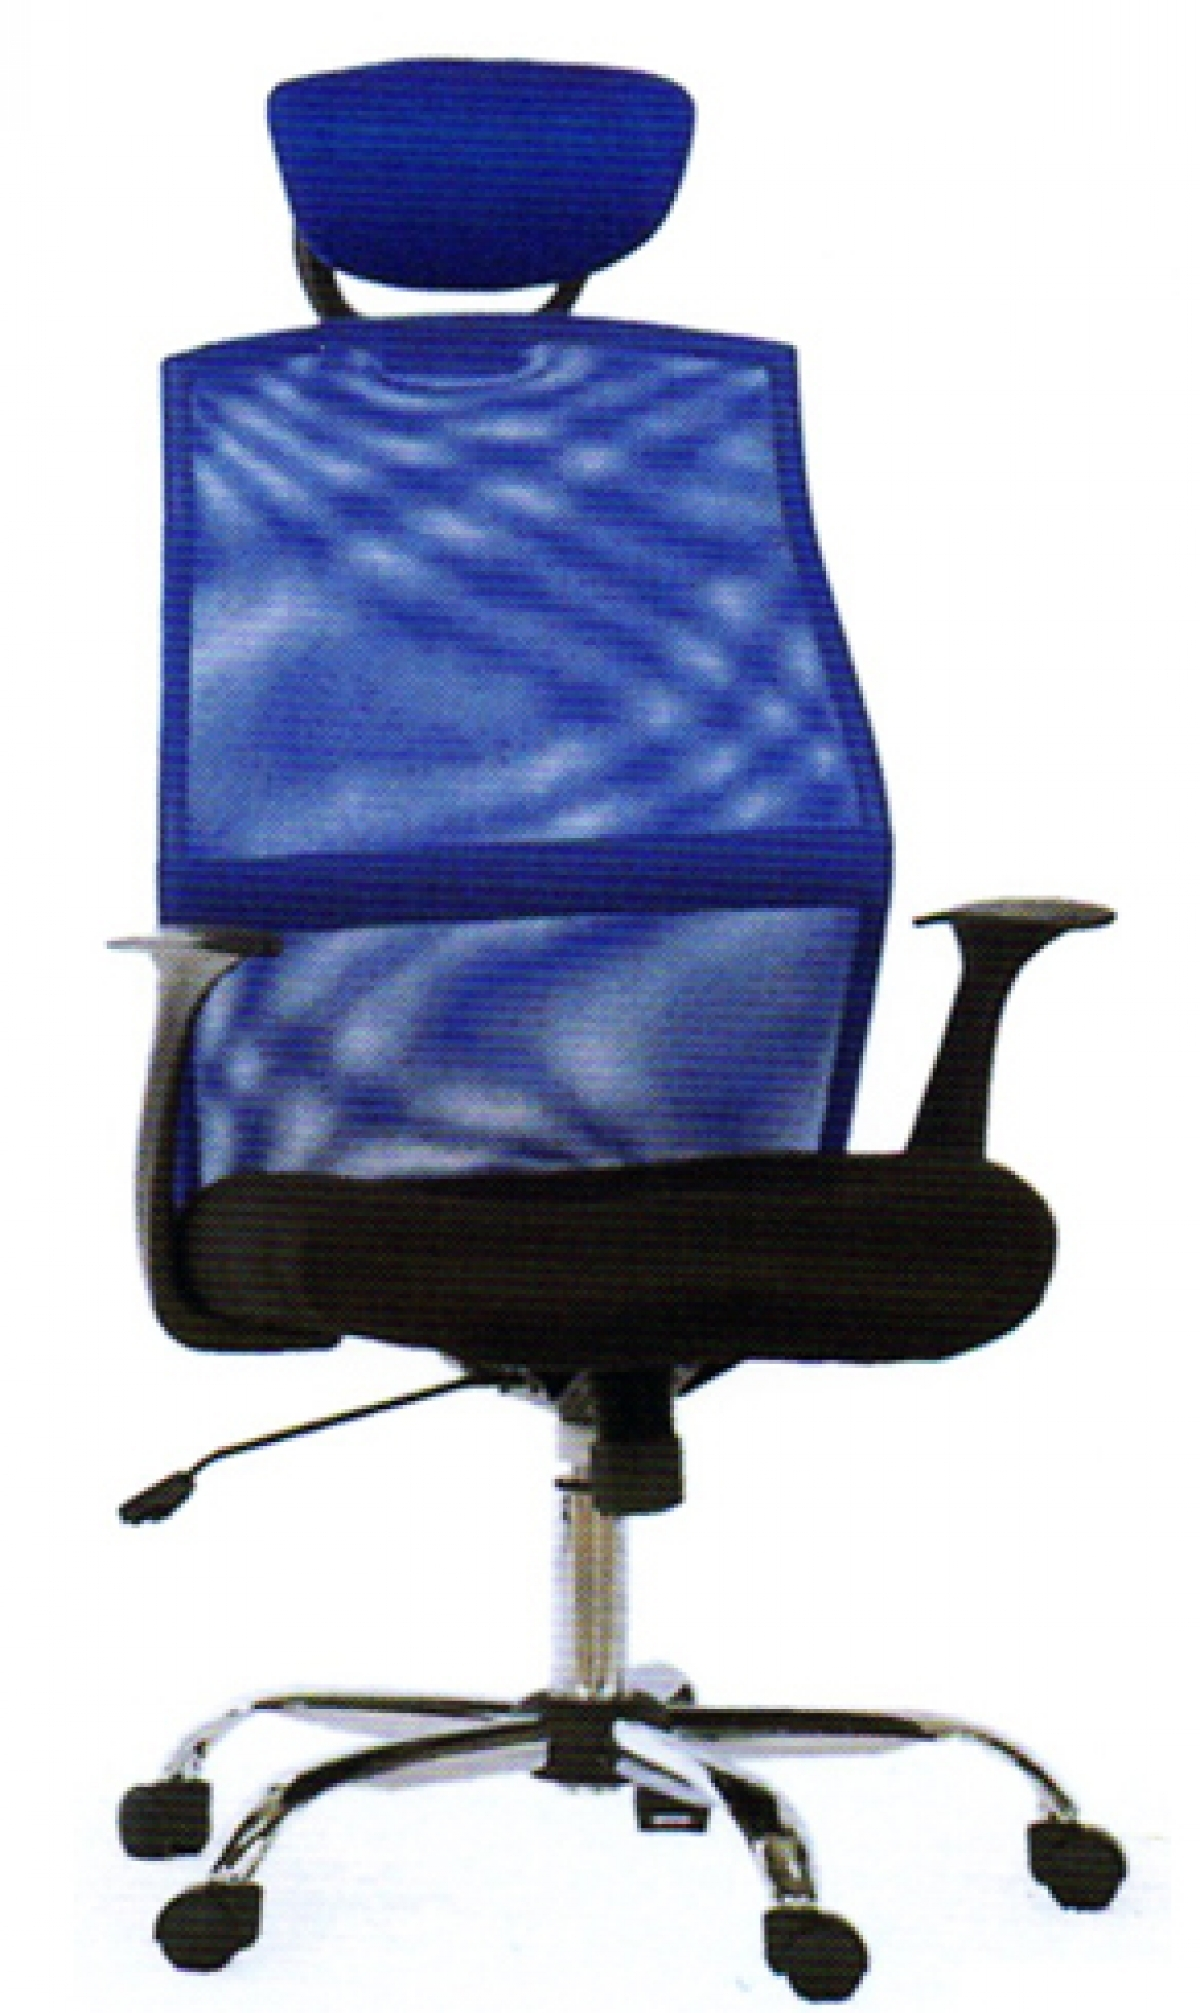 Hlc0071 Office Chair Rym Furniture